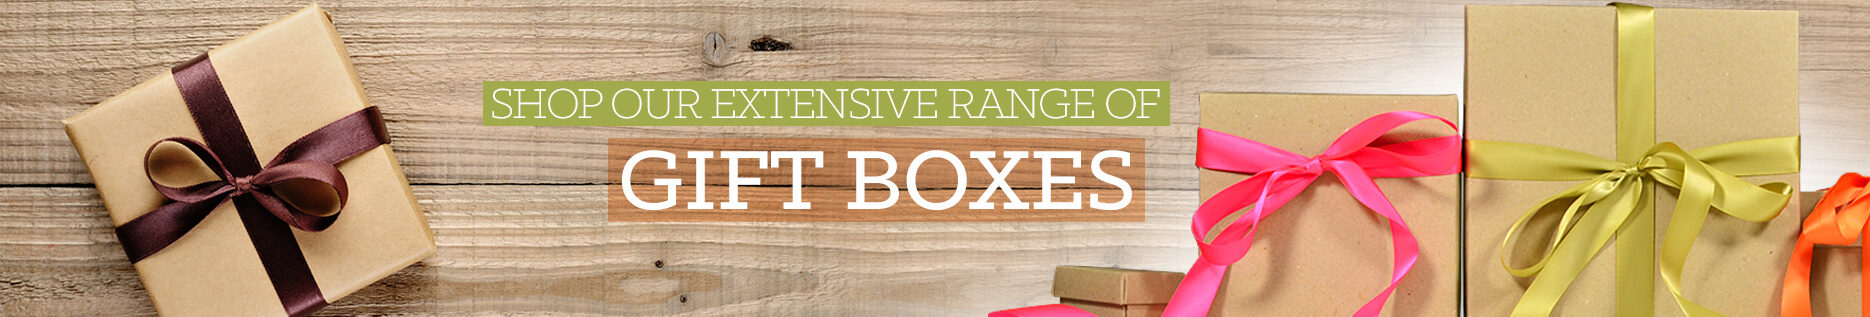 BANNER: Gift Boxes 3